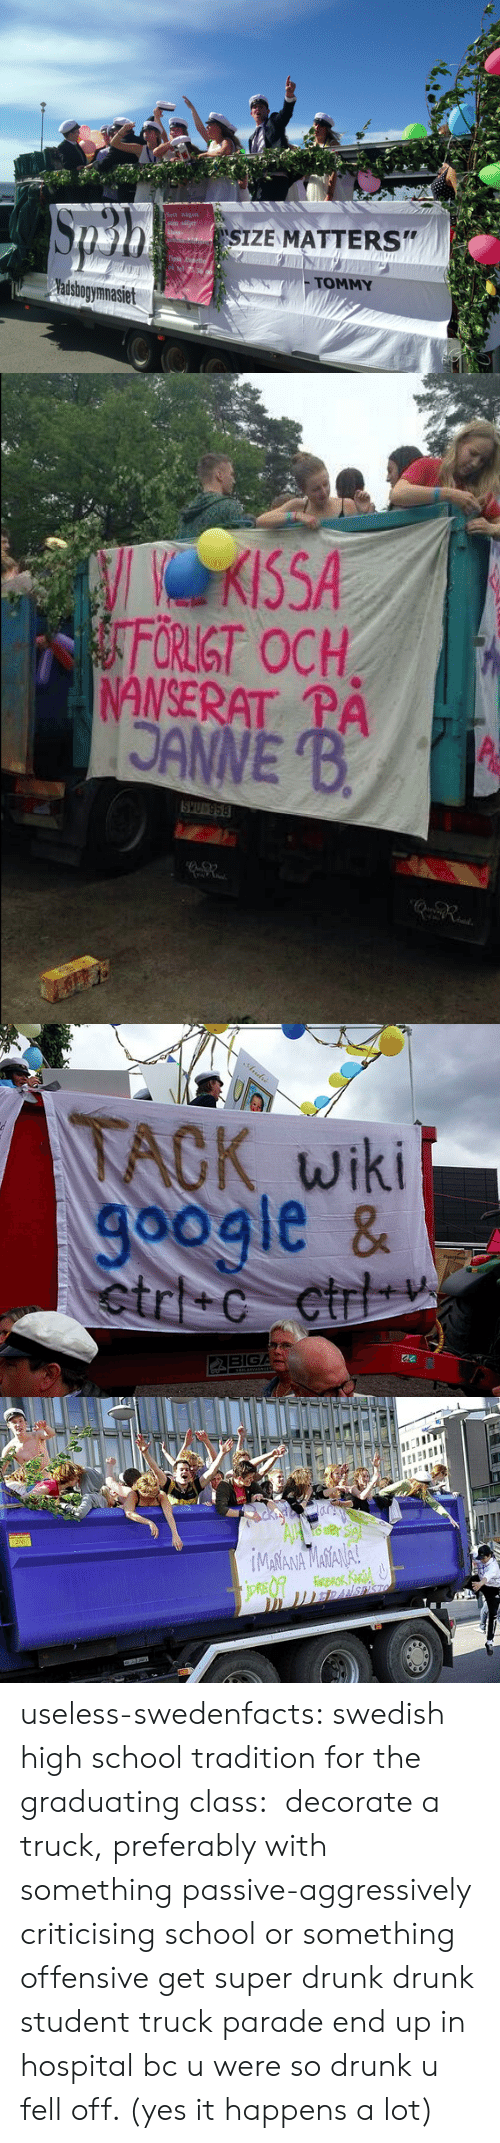 """Sett: Sett nigon  SIZE MATTERS""""  Pi tel  TOMMY  adsbogymnasiet   ACK, wiki  oogle &  BIGA  au useless-swedenfacts:  swedish high school tradition for the graduating class: decorate a truck, preferably with something passive-aggressively criticising school or something offensive get super drunk drunk student truck parade end up in hospital bc u were so drunk u fell off. (yes it happens a lot)"""